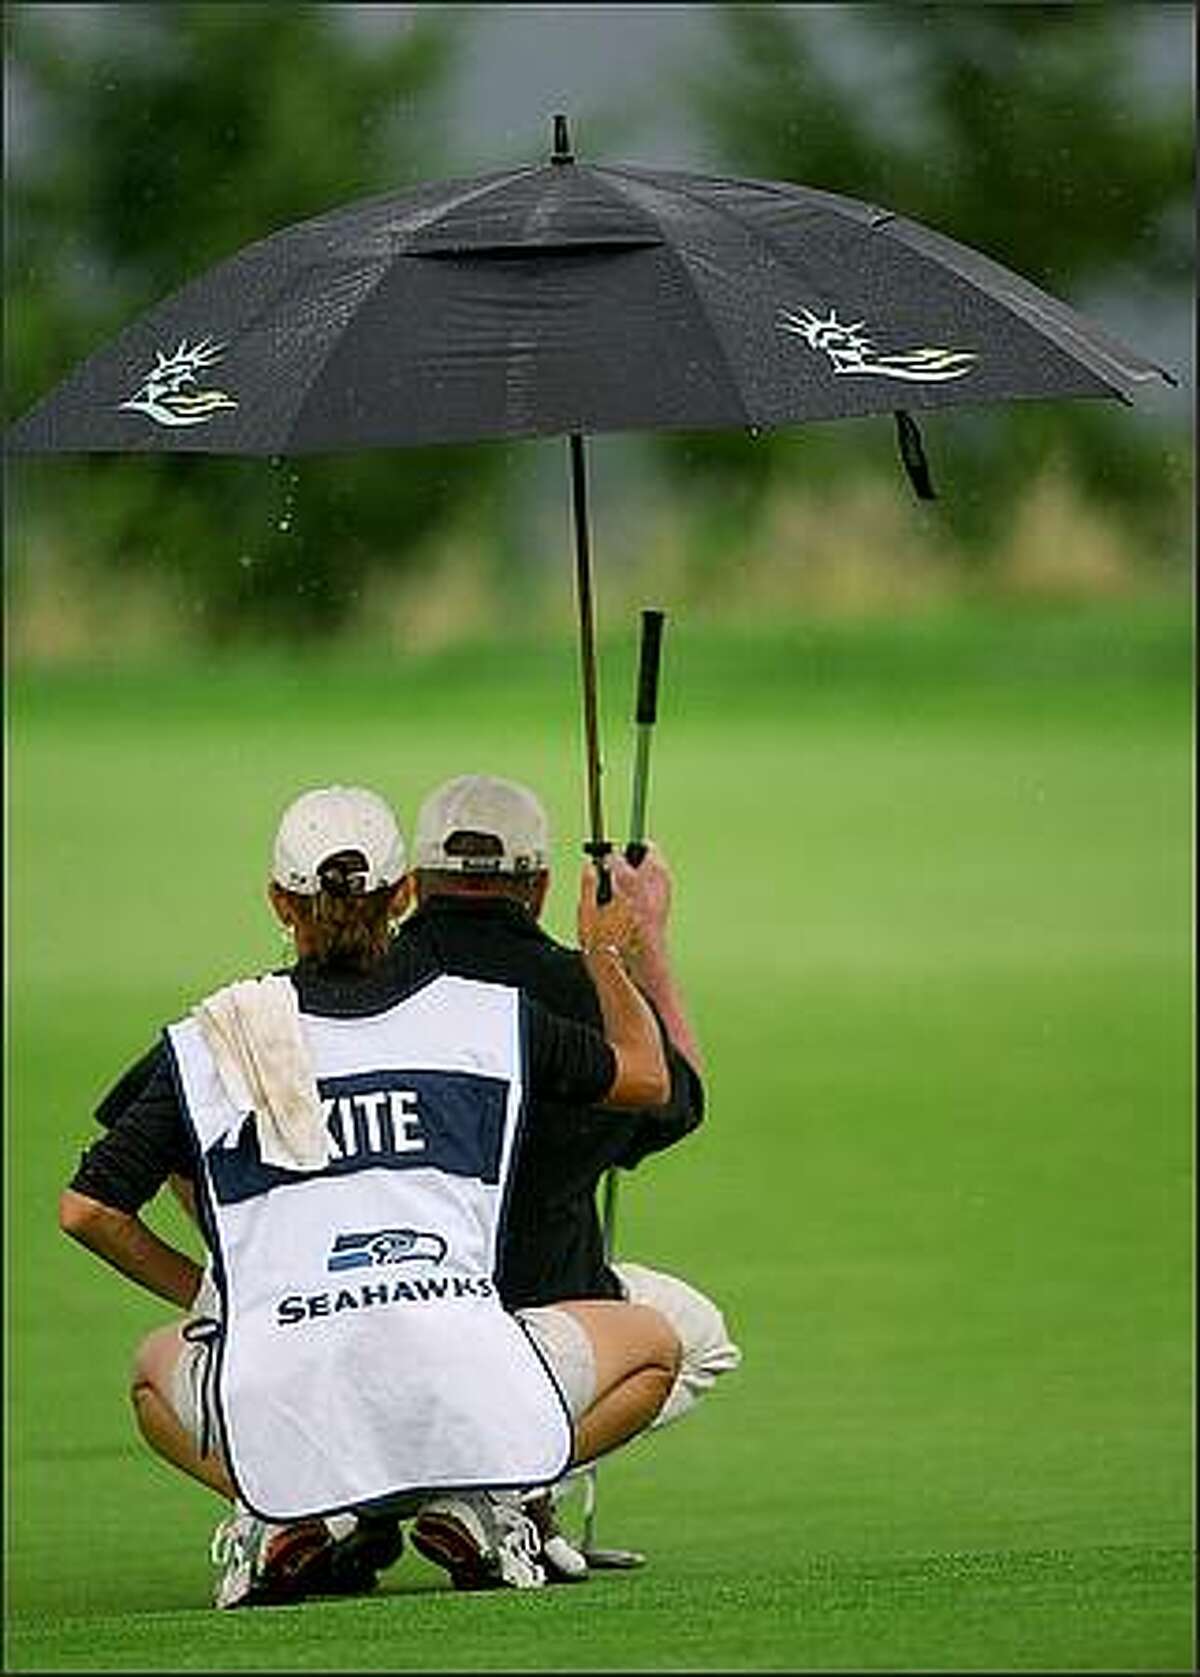 Tom Kite's caddie keeps him dry as they eyeball the putt on the 13th hole during the final round of the 2008 Boeing Classic on the Champions Tour at the TPC at Snoqualmie Ridge.